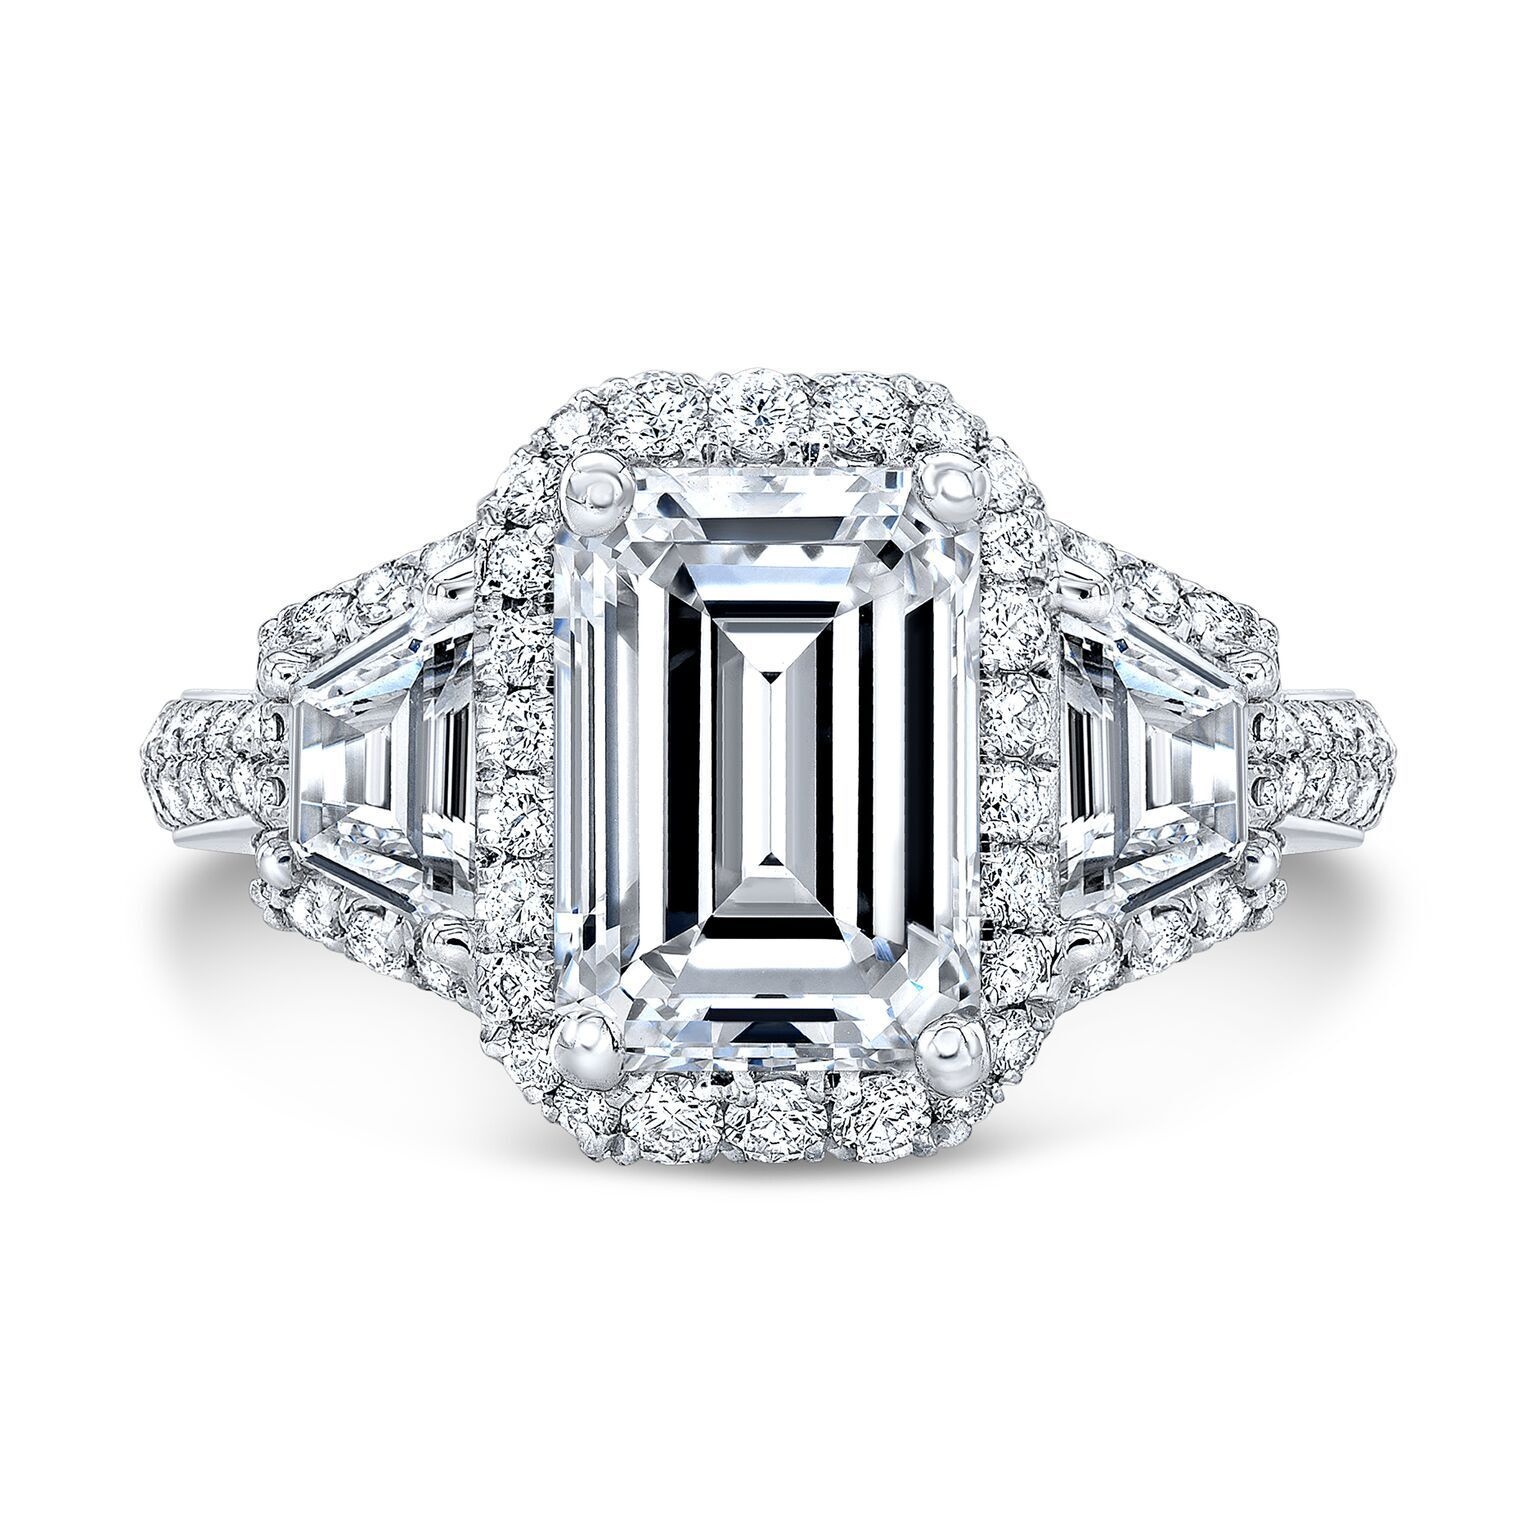 2.20ctwNatural Emerald Cut 3-Stone Halo 2 Row Shank Diamond Engagement Ring GIA